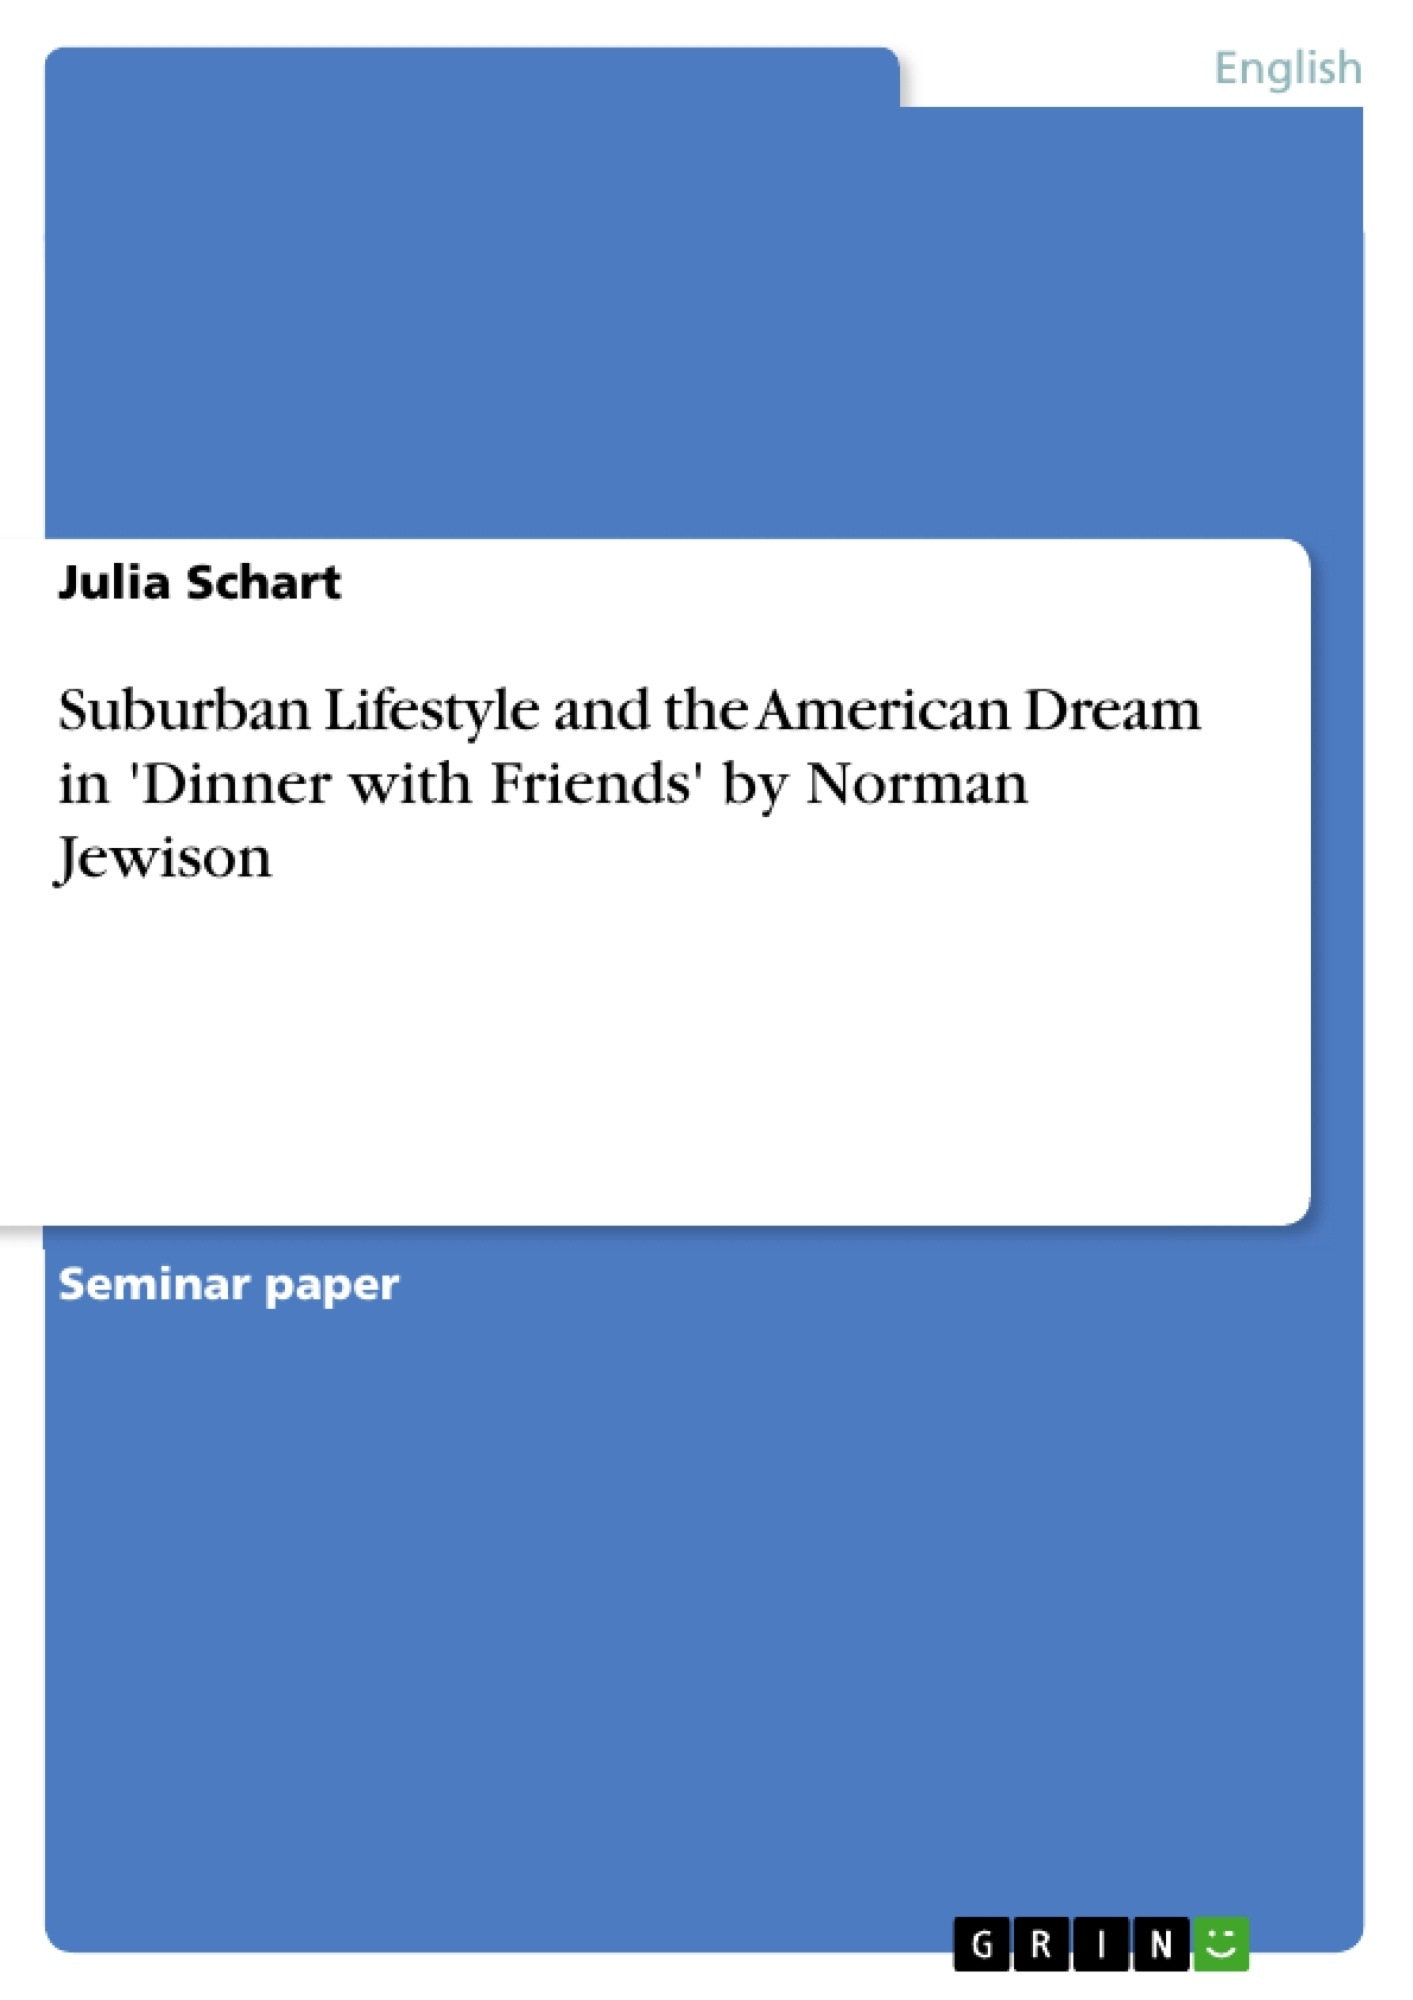 Title: Suburban Lifestyle and the American Dream in 'Dinner with Friends' by Norman Jewison